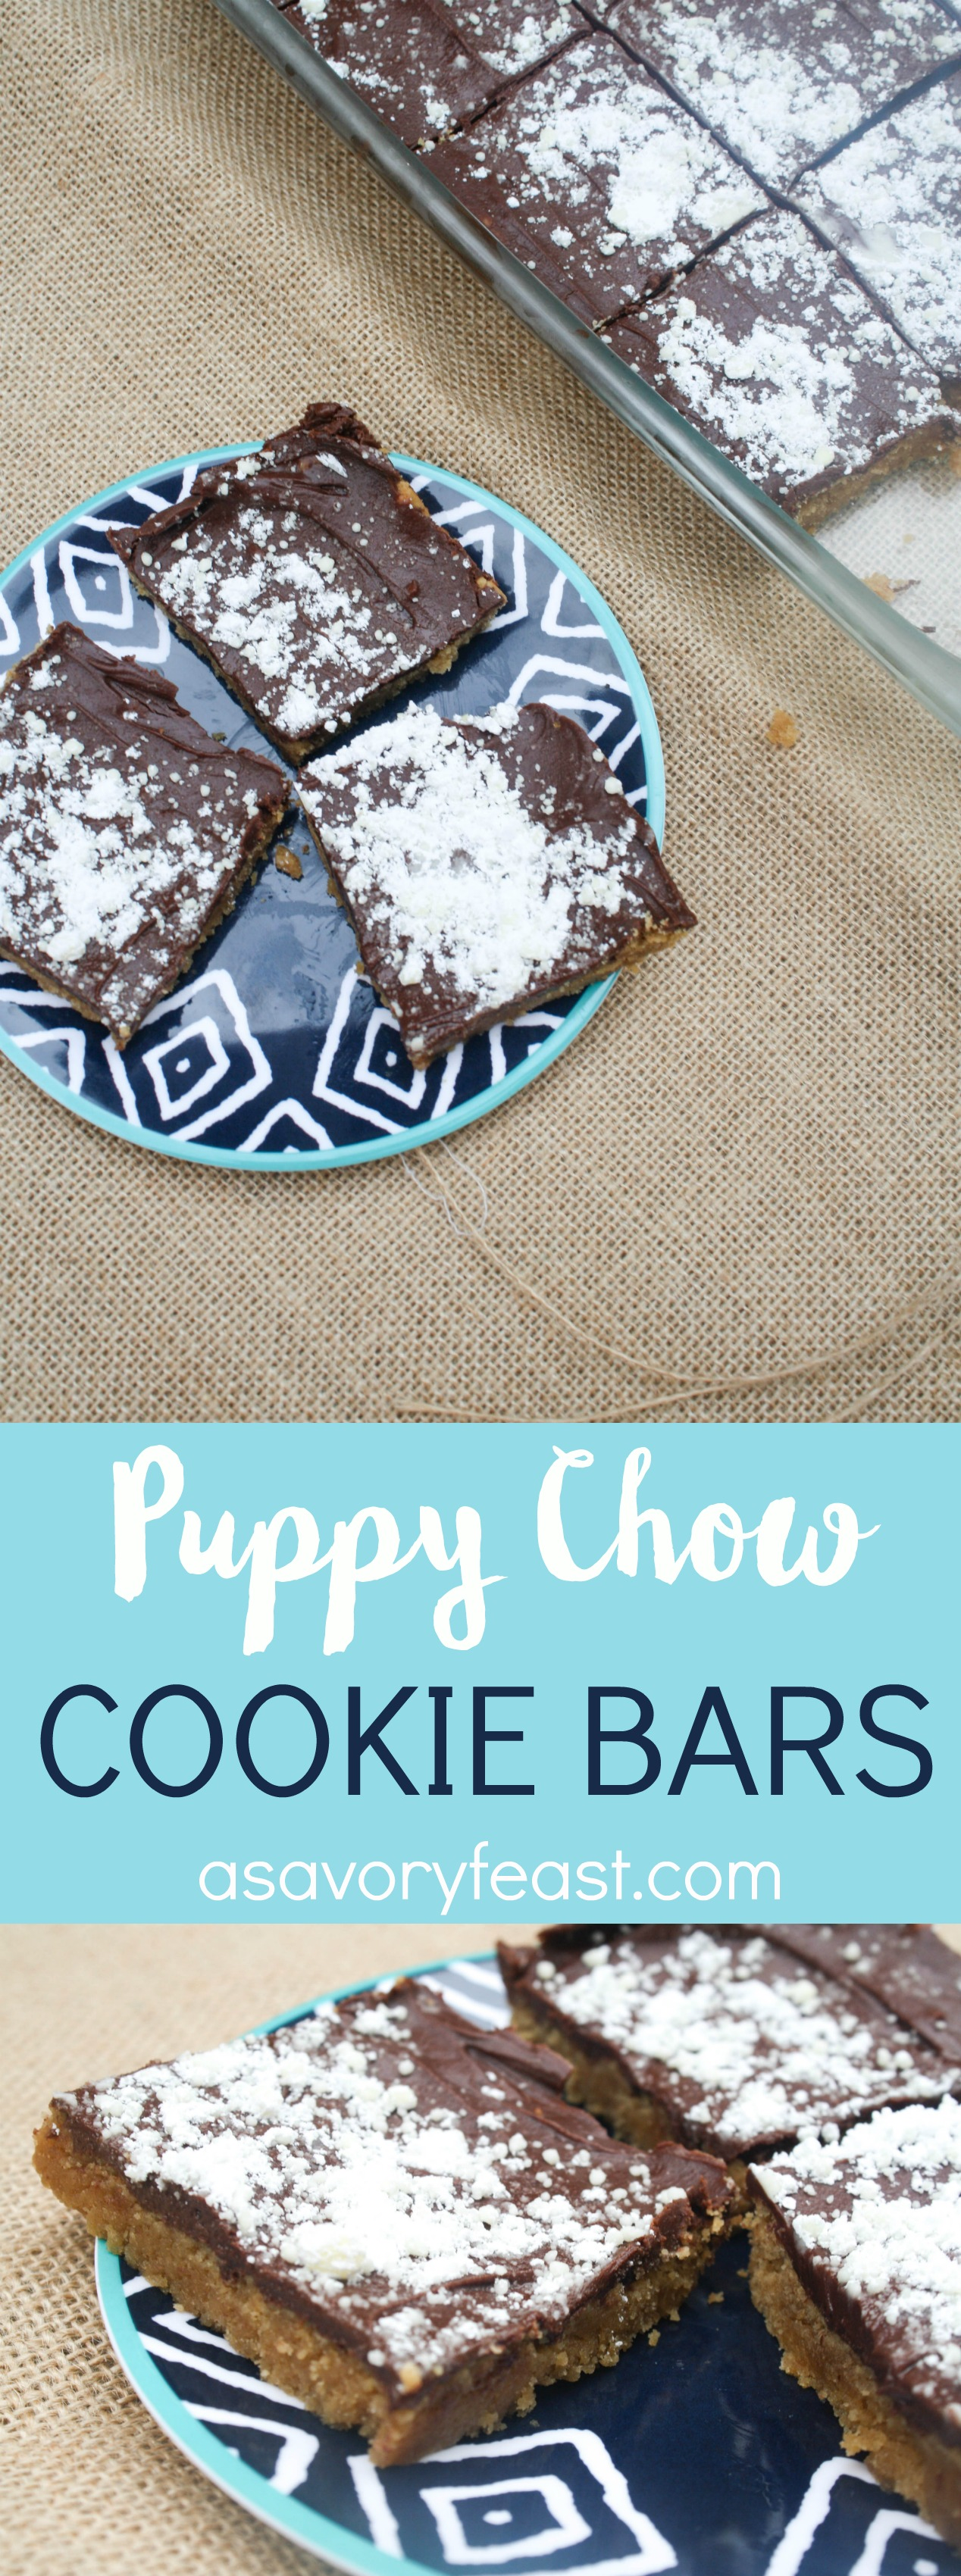 Love puppy chow? It's even better in these cookie bars! All the flavor you love from puppy chow, but in bar form. These bars start with a soft peanut butter cookie layer followed by a chocolate peanut butter layer. Sprinkle with powdered sugar for the final touch!